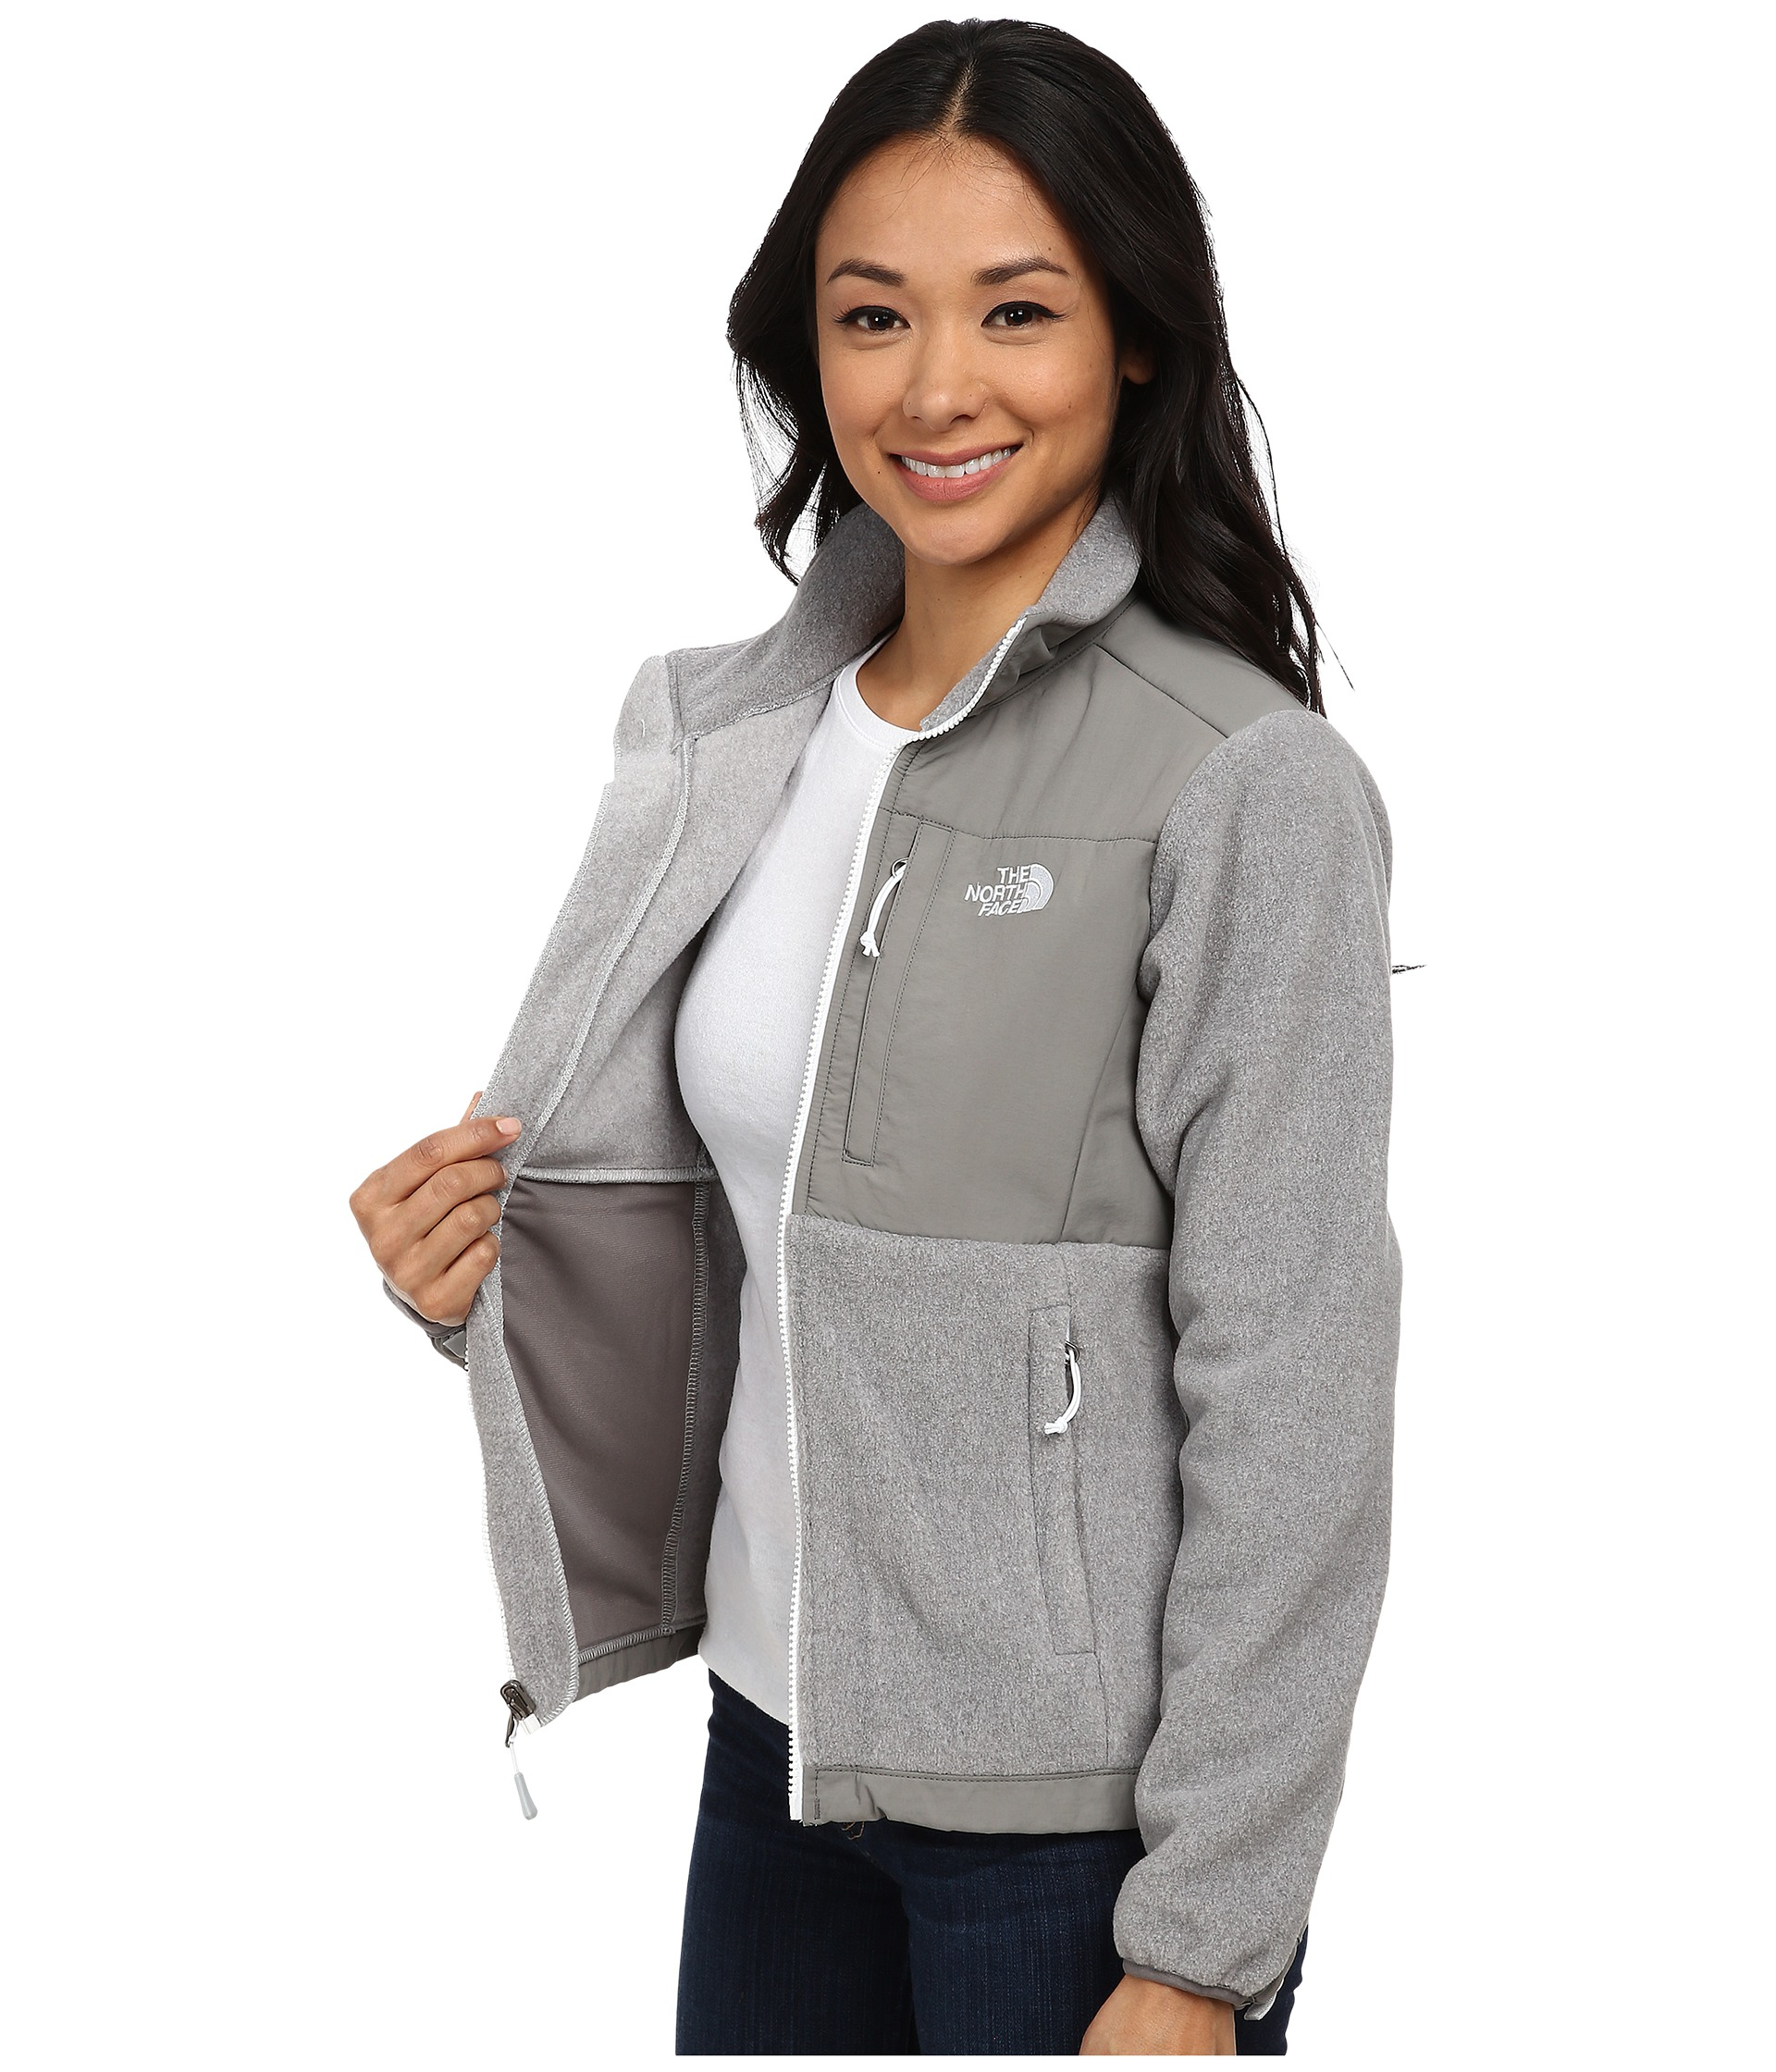 26fb82b03758 ... shopping lyst the north face denali jacket in gray 29929 d2c25